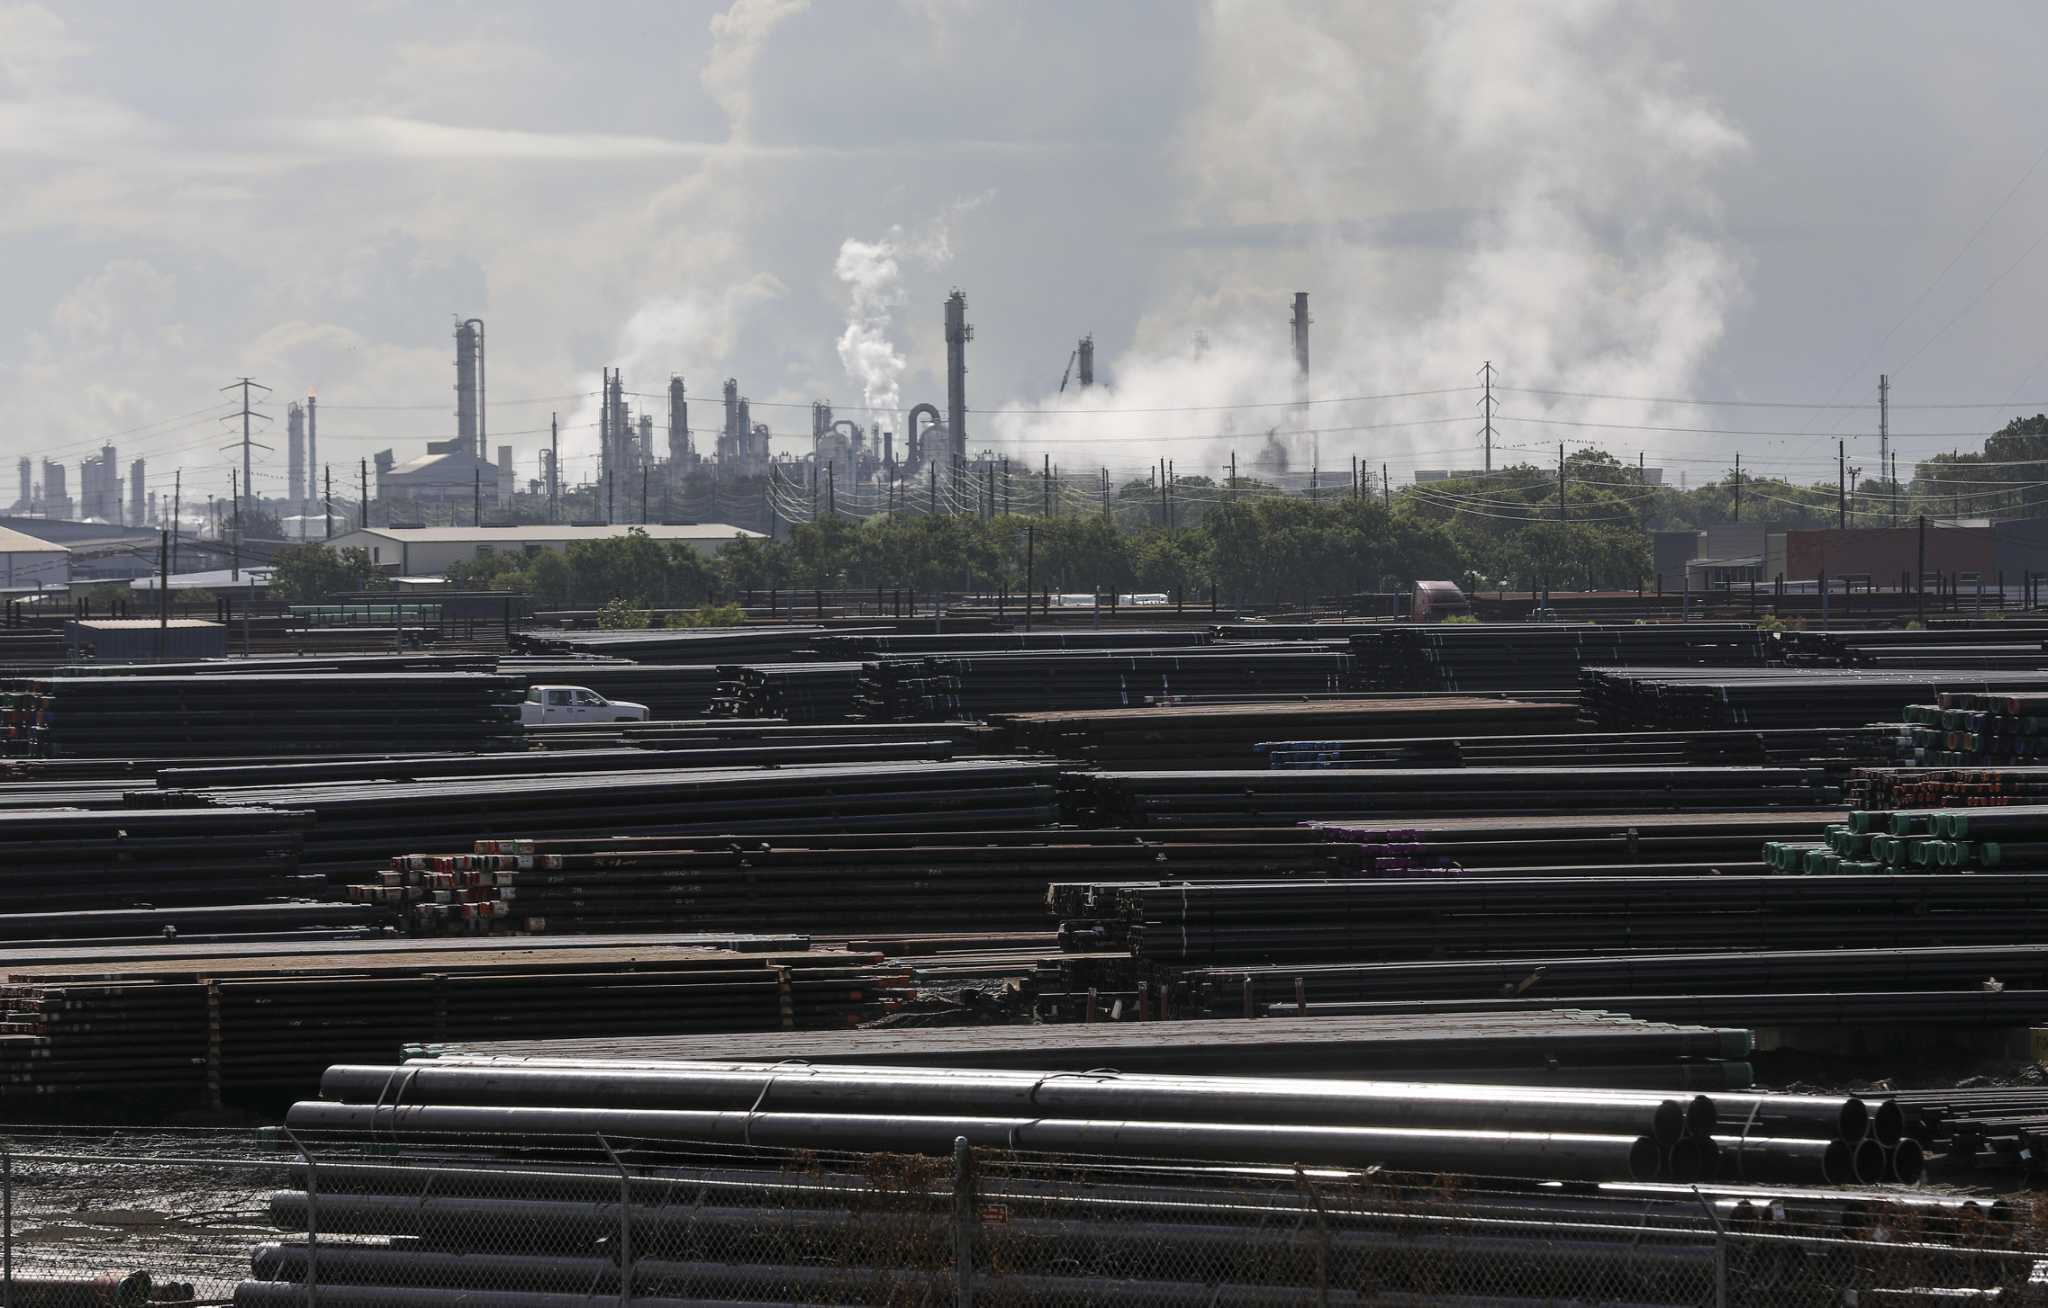 Energy transition could spur $111 billion in oil divestments, report says